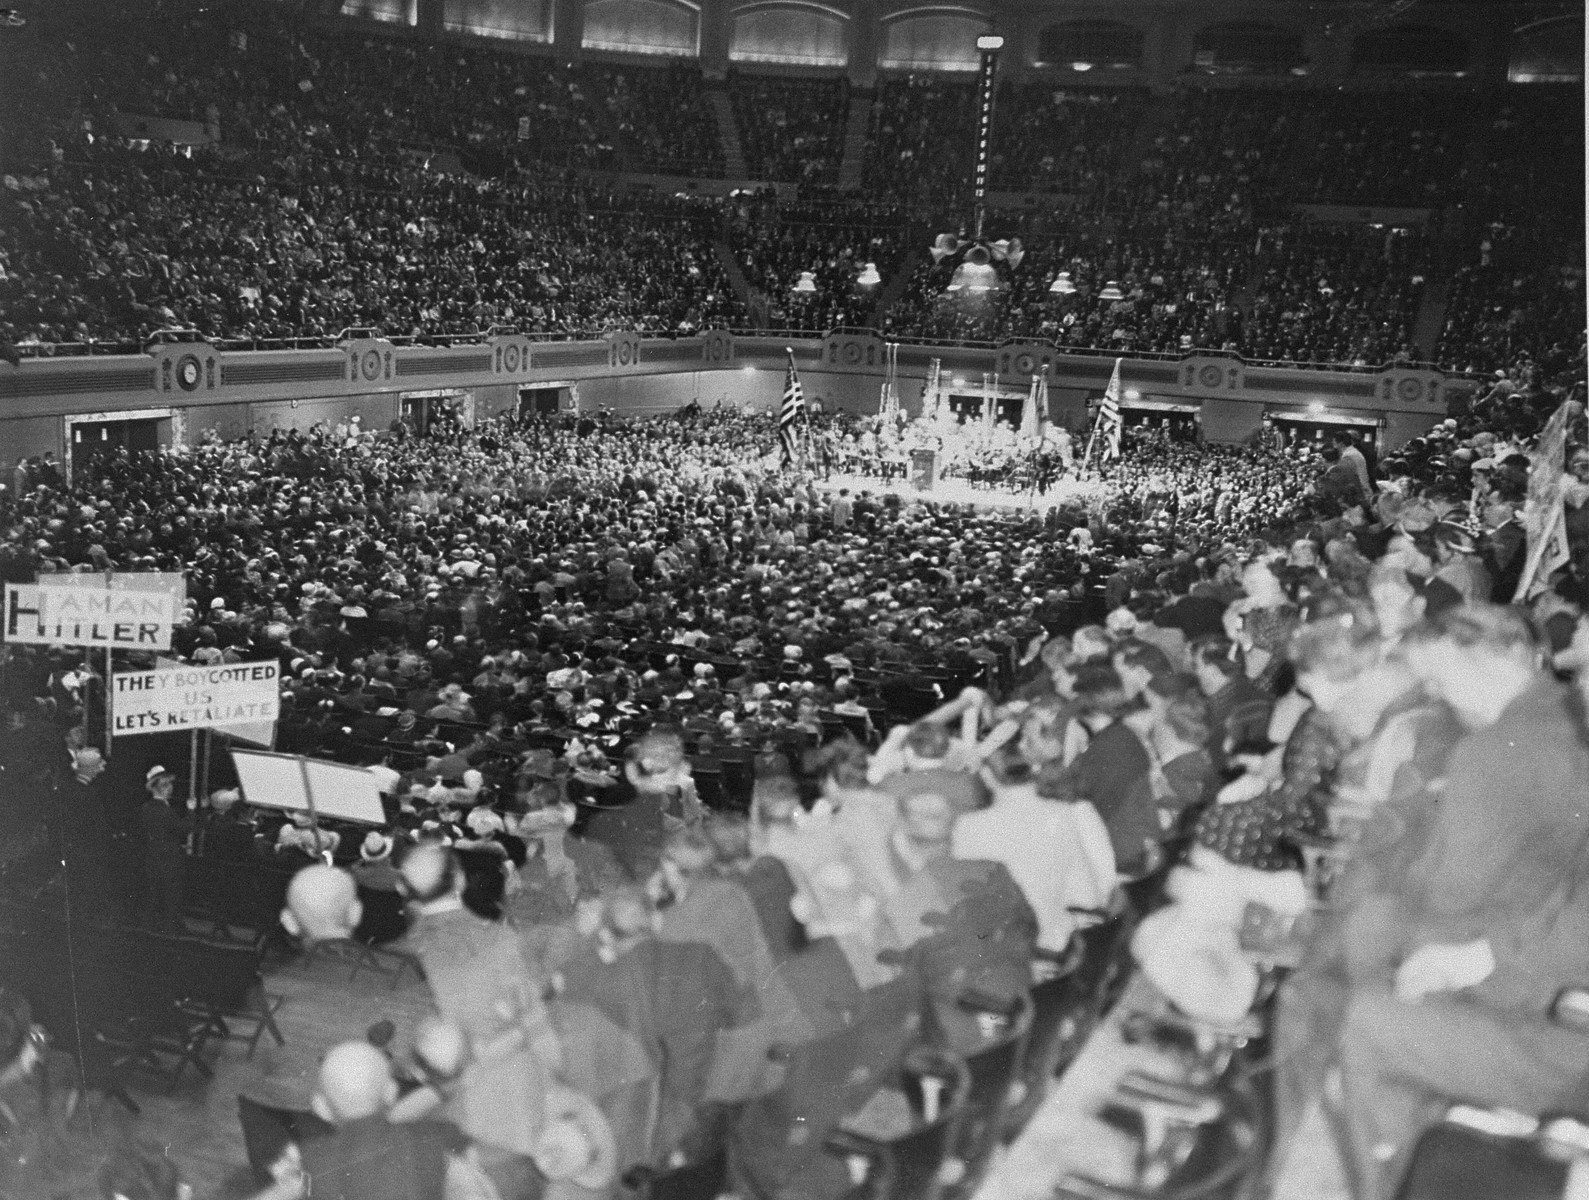 Thousands gather at an indoor arena in Cleveland to protest against the Nazi persecution of German Jews.